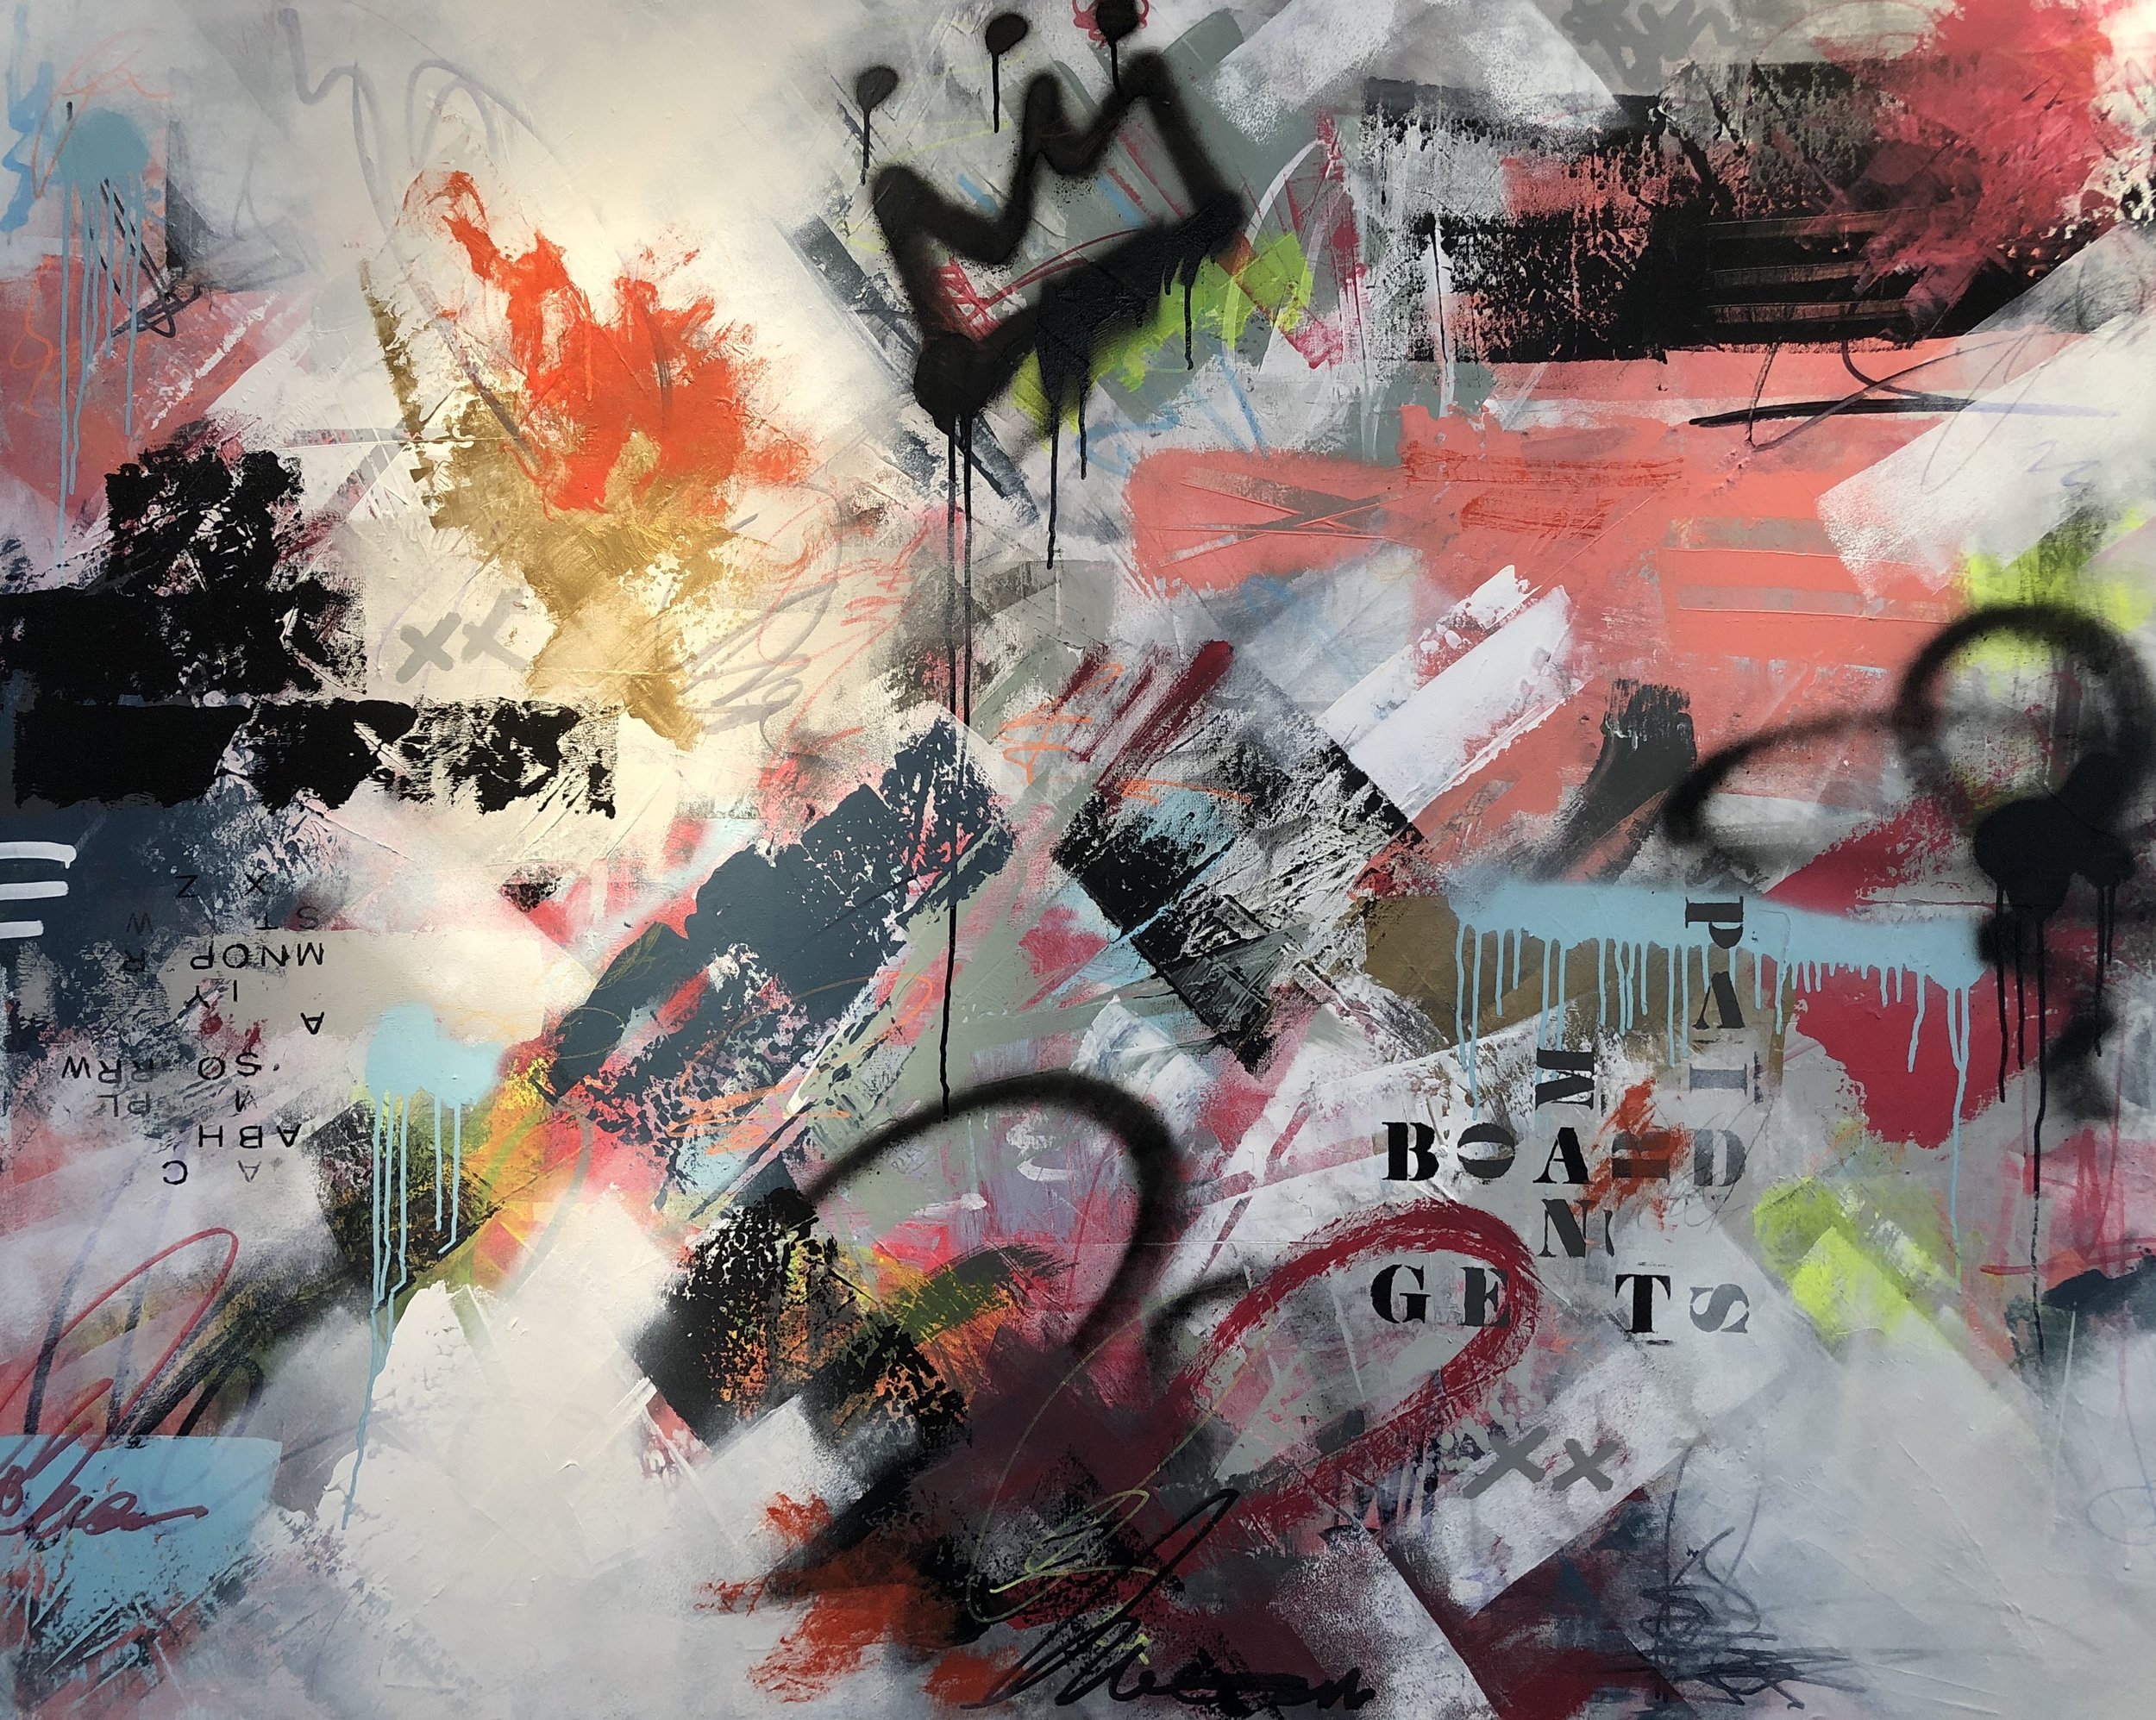 """0.9 seconds� 2019; mixed media on canvas (48 x 60�); $1,900"